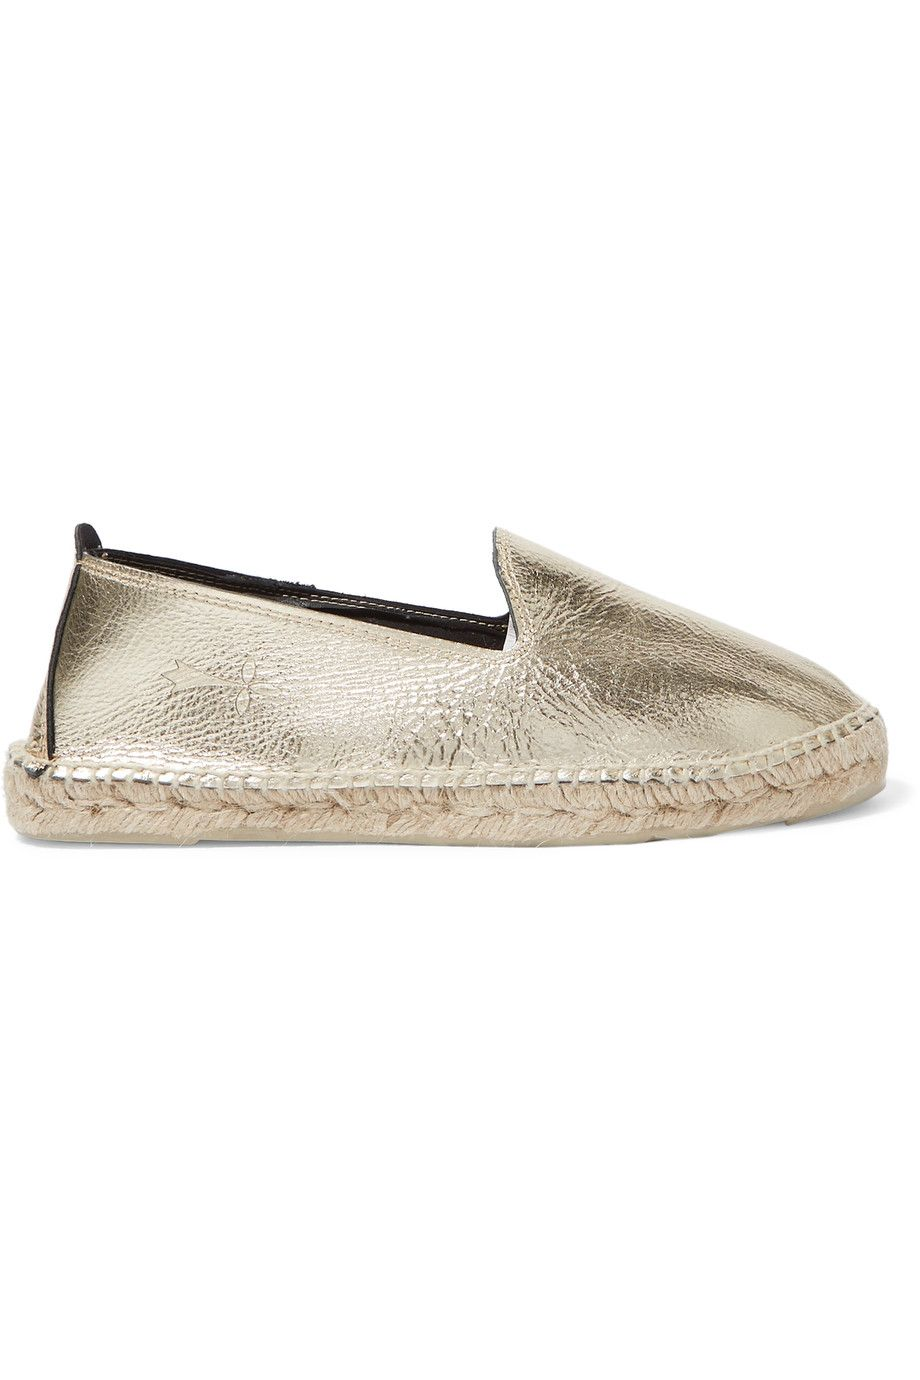 Many Styles Pictures Online Womens Los Angeles Espadrilles Manebì Discounts Discount With Paypal Cheap Clearance pgAHzrduHa